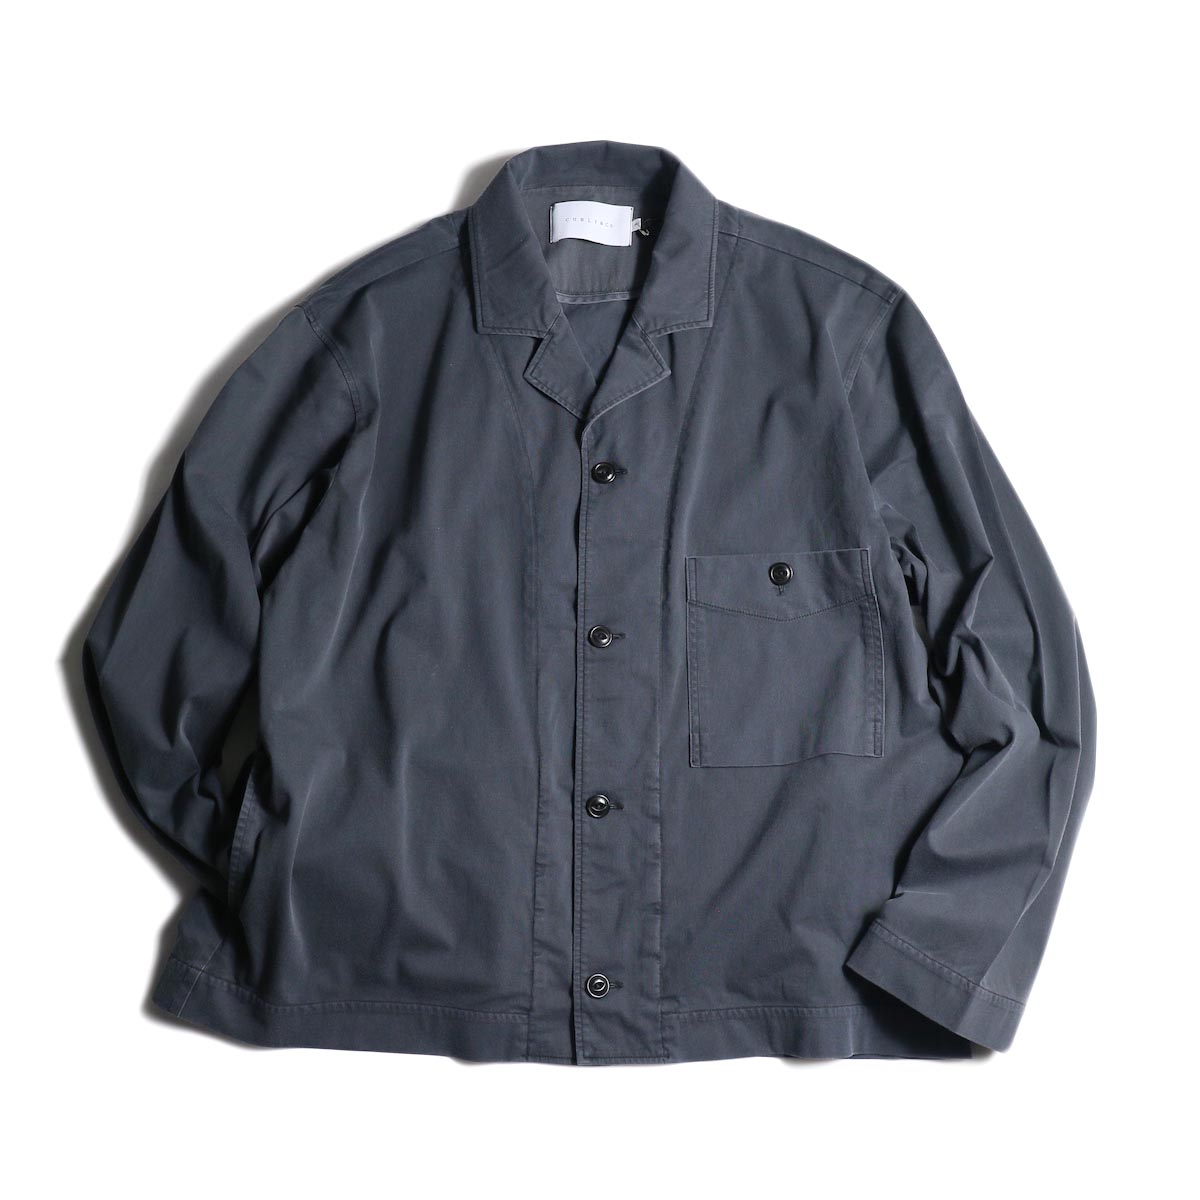 CURLY / FROSTED SHIRCKET (Black)